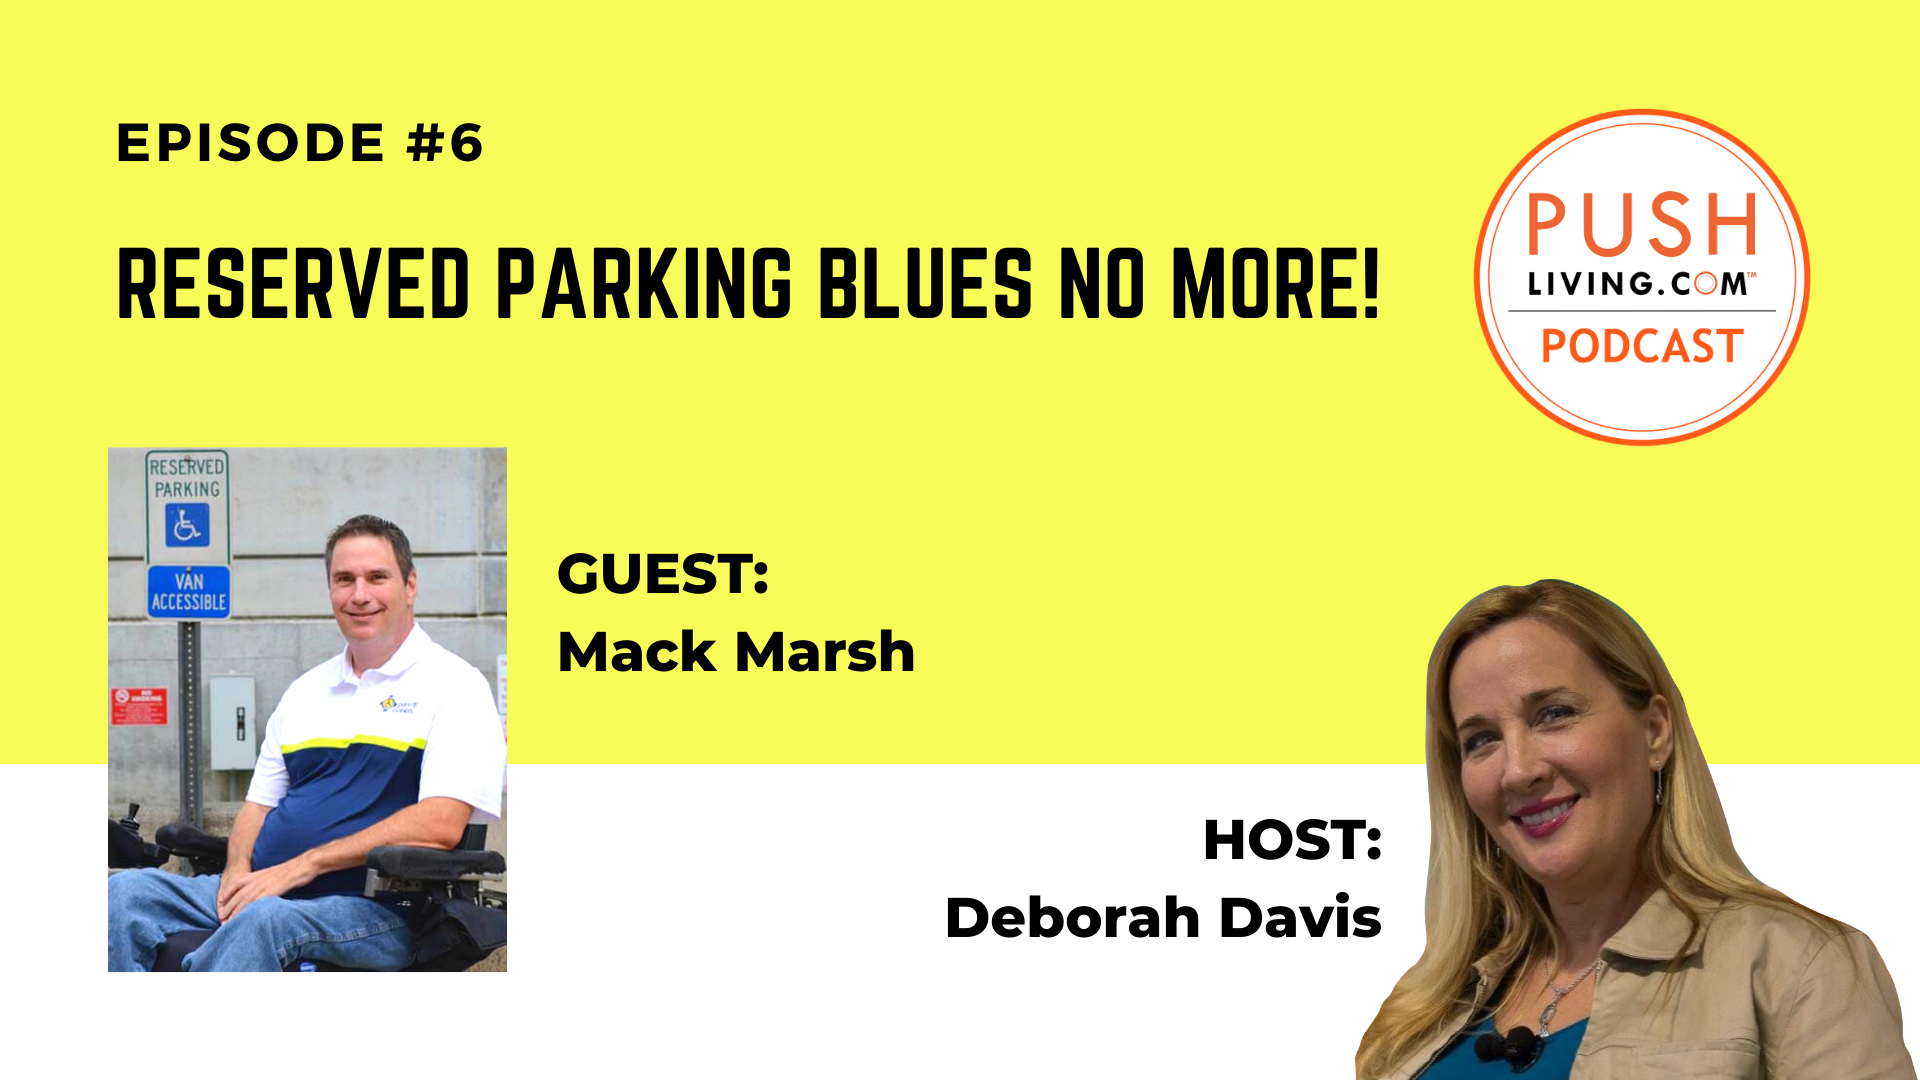 Podcast6 Cover 1 - ASK PUSHLiving: What to do if you see someone abusing handicap parking?